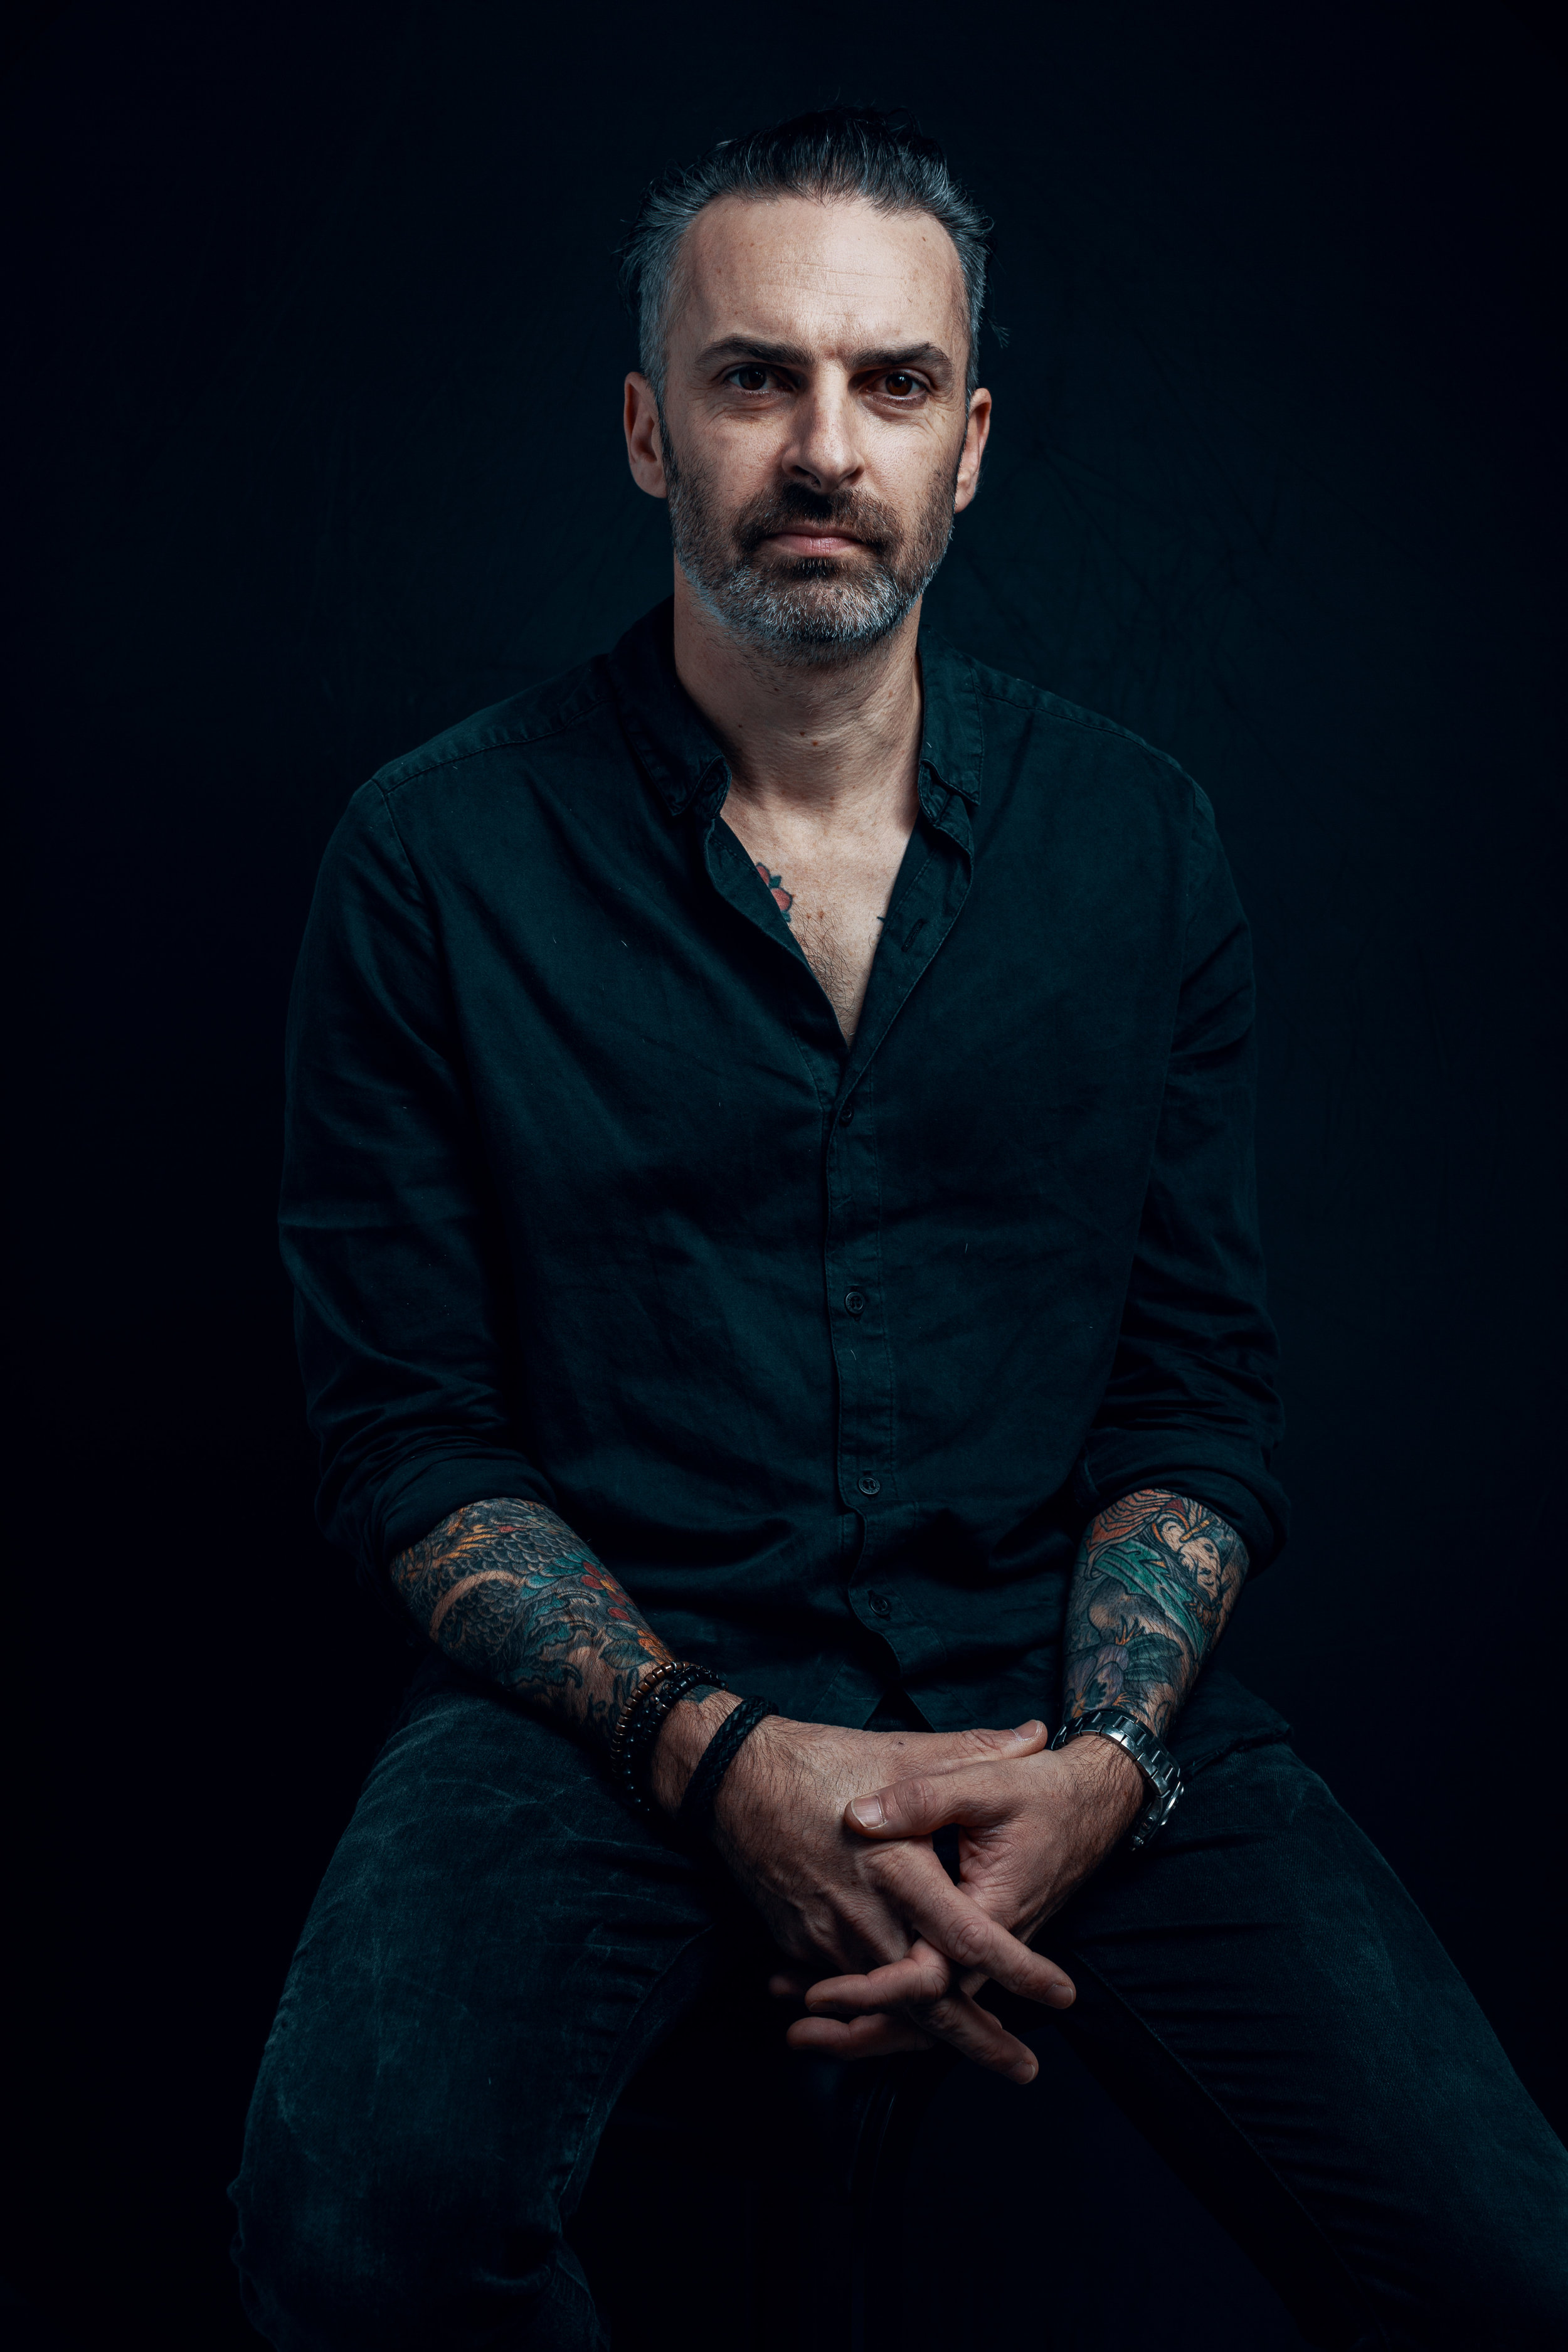 STEPHEN COCKLE / Creative Director & Co-Owner